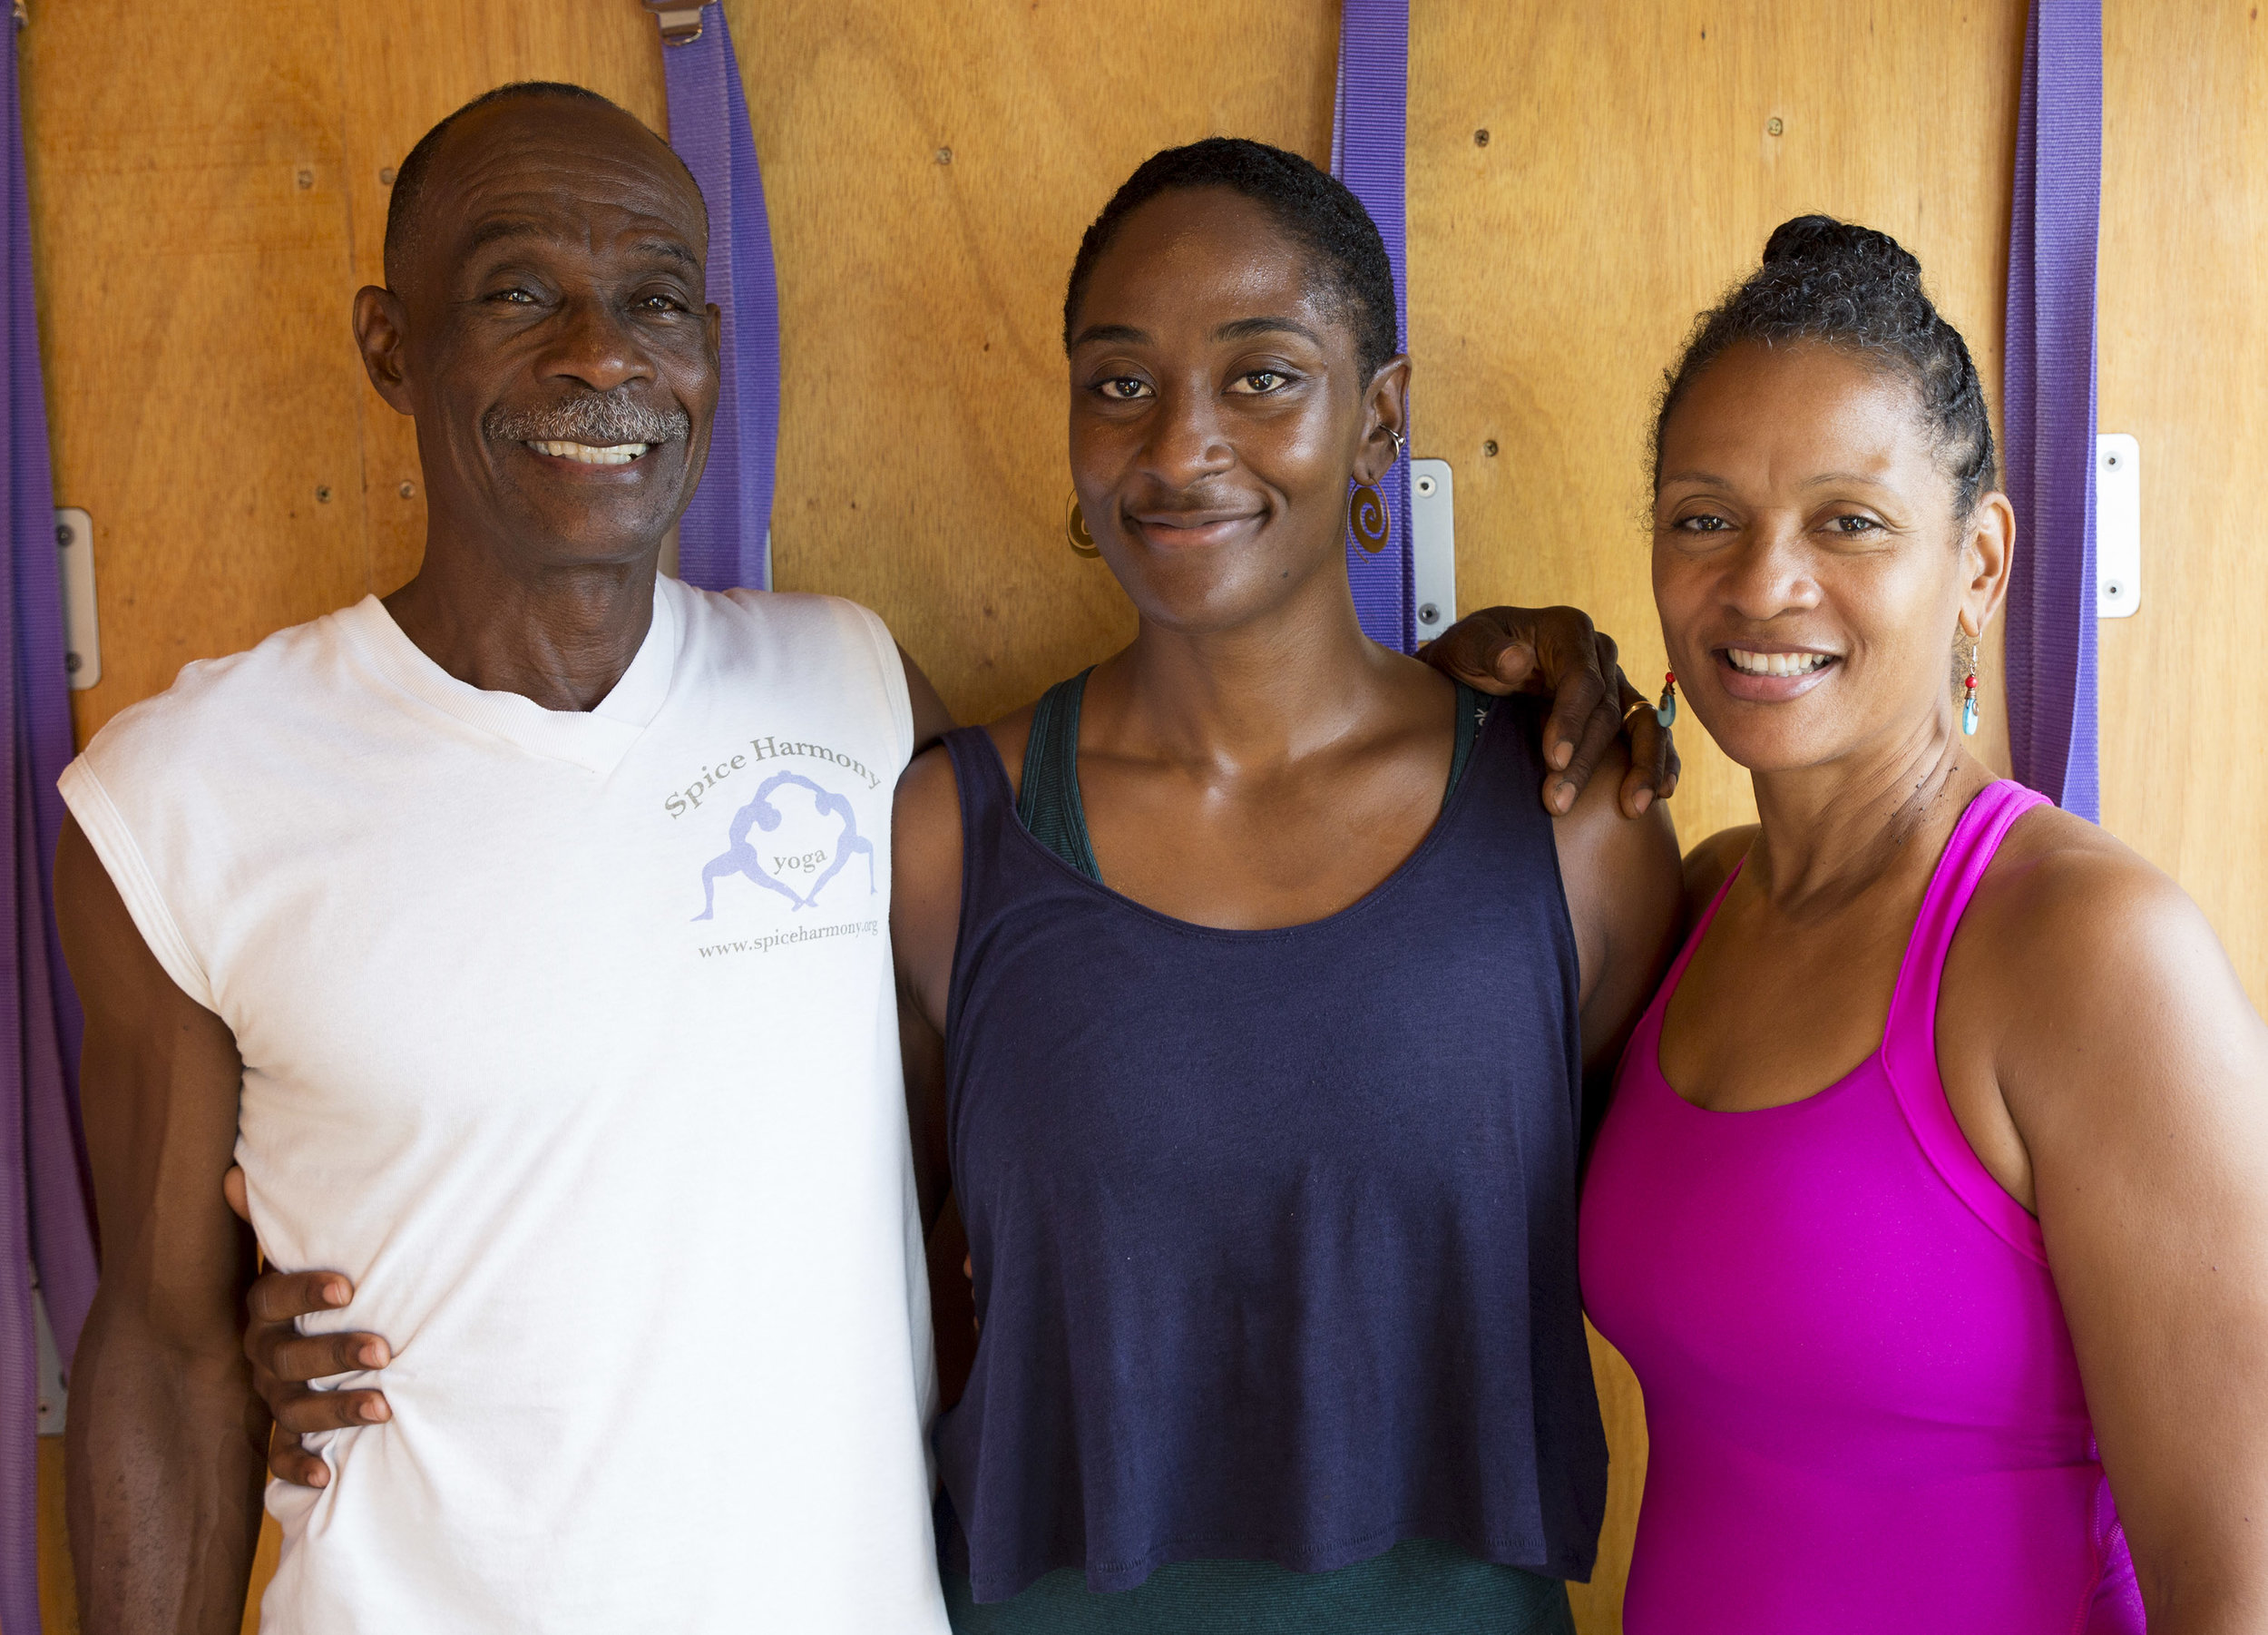 Ferron, Malaika and Kecia - The family behind Spice Harmony Yoga